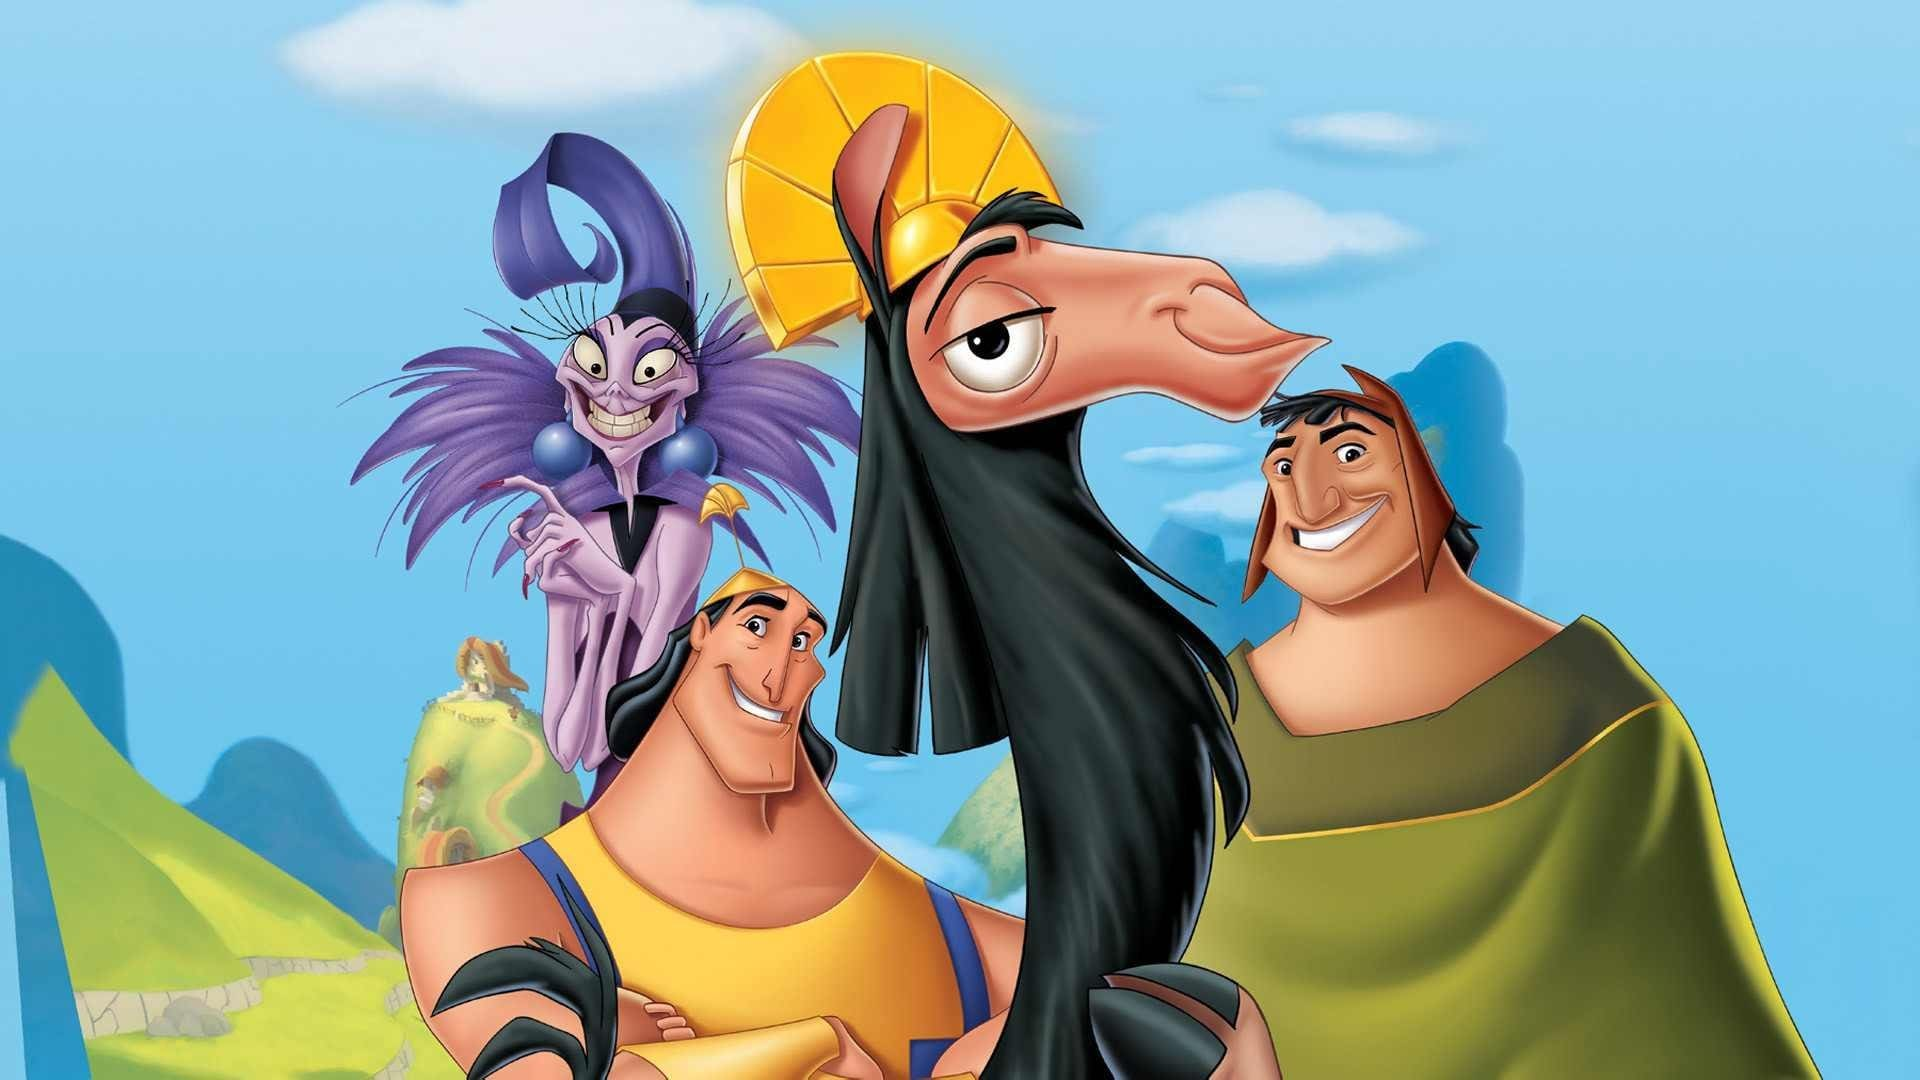 watch the emperors new groove online free 123movies